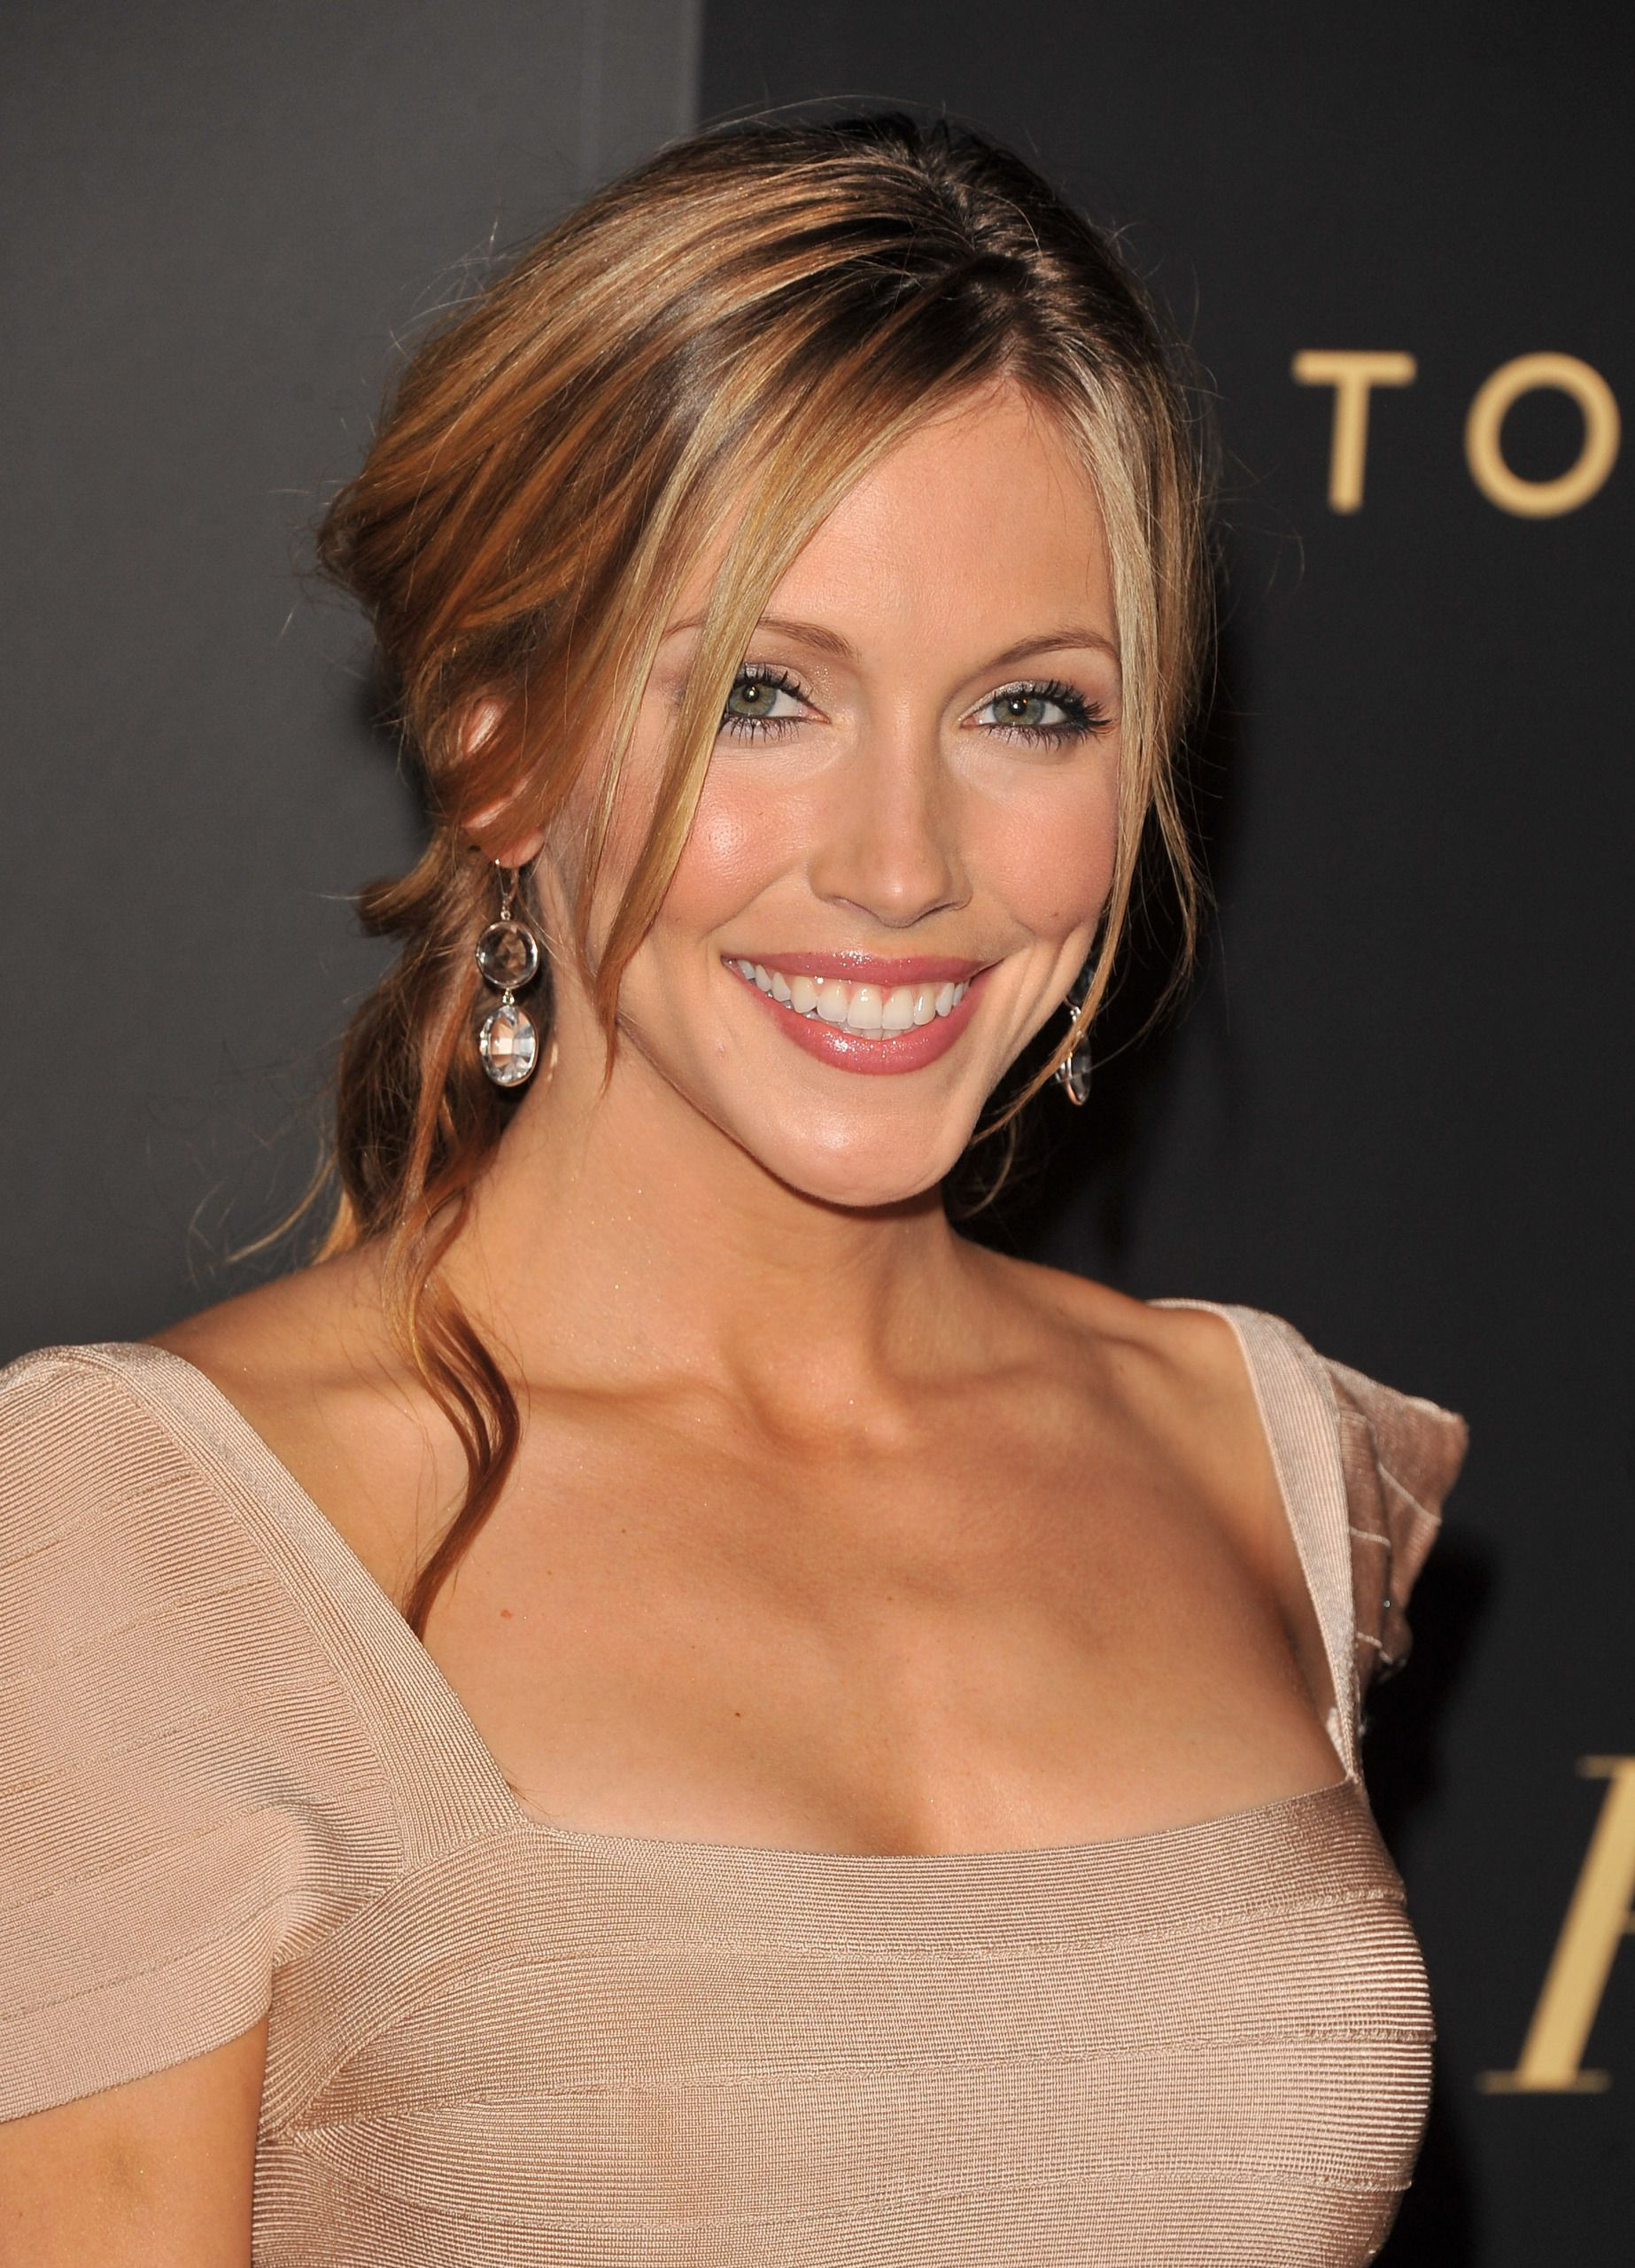 katie cassidy wikikatie cassidy arrow, katie cassidy gif, katie cassidy фото, katie cassidy кинопоиск, katie cassidy site, katie cassidy 2017, katie cassidy icons, katie cassidy and willa holland, katie cassidy wallpaper, katie cassidy trump, katie cassidy 2016, katie cassidy screencaps, katie cassidy wiki, katie cassidy flash, katie cassidy imdb, katie cassidy smile, katie cassidy instagram, katie cassidy daily, katie cassidy and caity lotz, katie cassidy insta